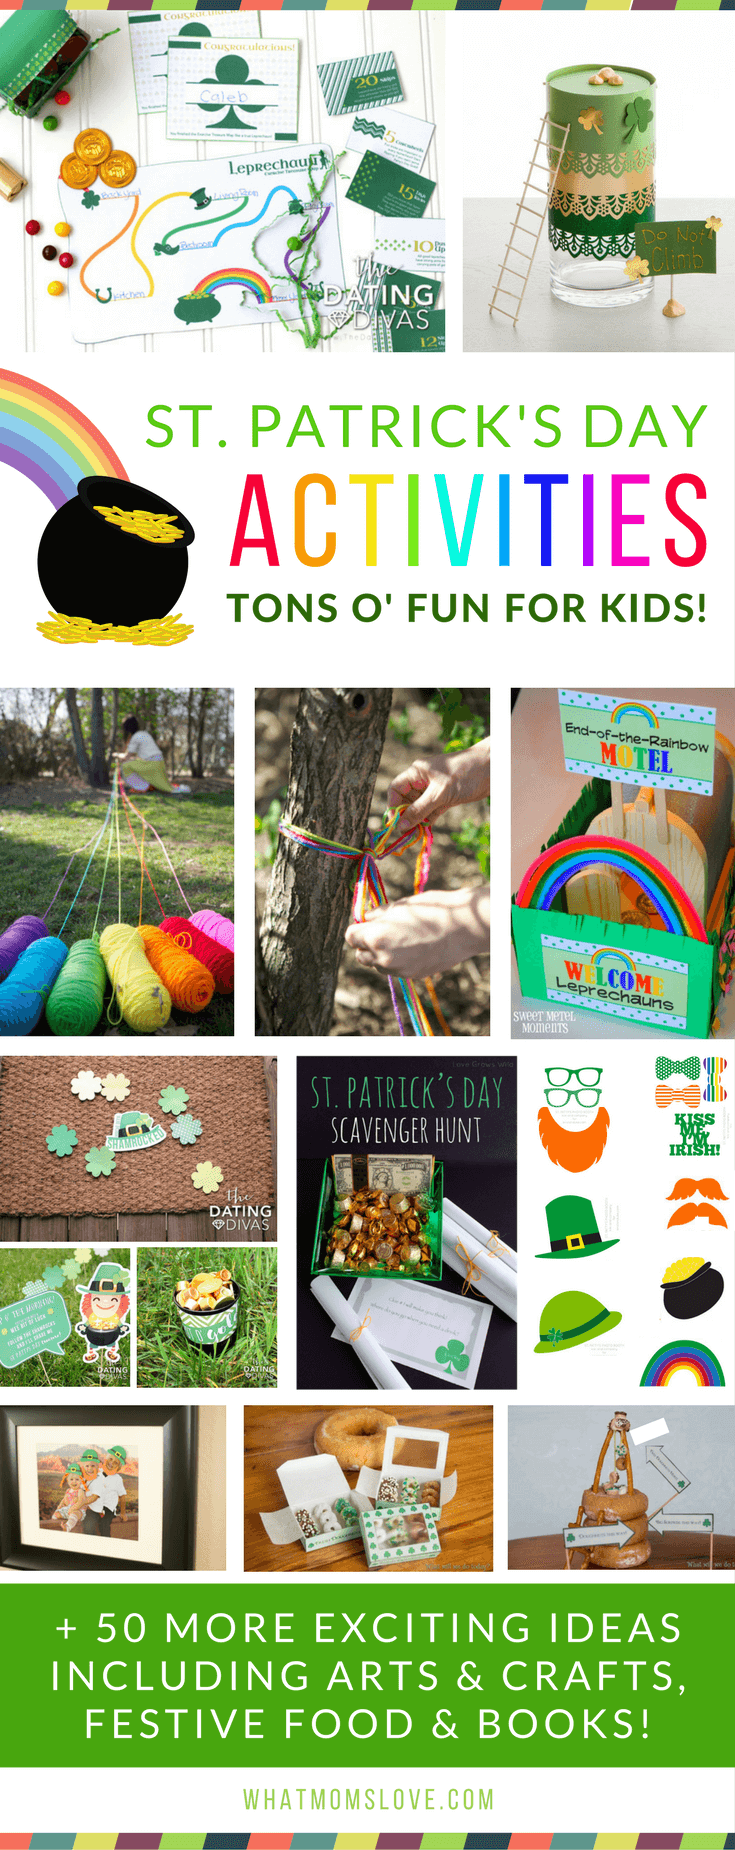 St Patricks Day Fun Activities For Kids - Leprechaun Traps, Tricks, Treasure Hunts + Arts and Crafts, Green and Rainbow Food, and book ideas.